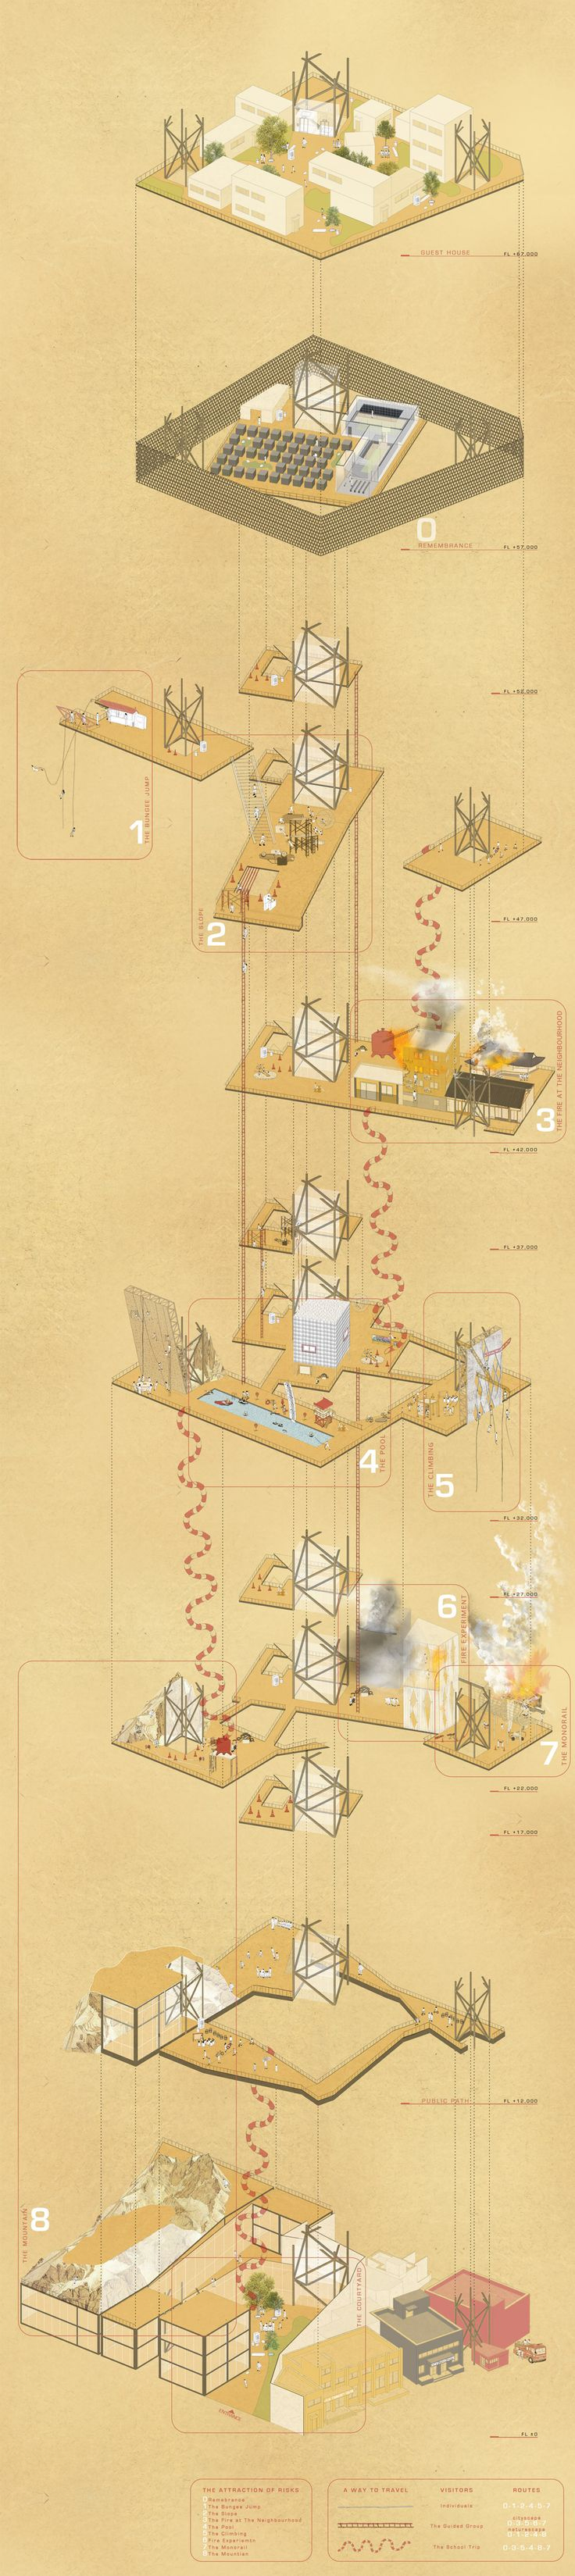 1000 Images About Architecture Drawing On Pinterest